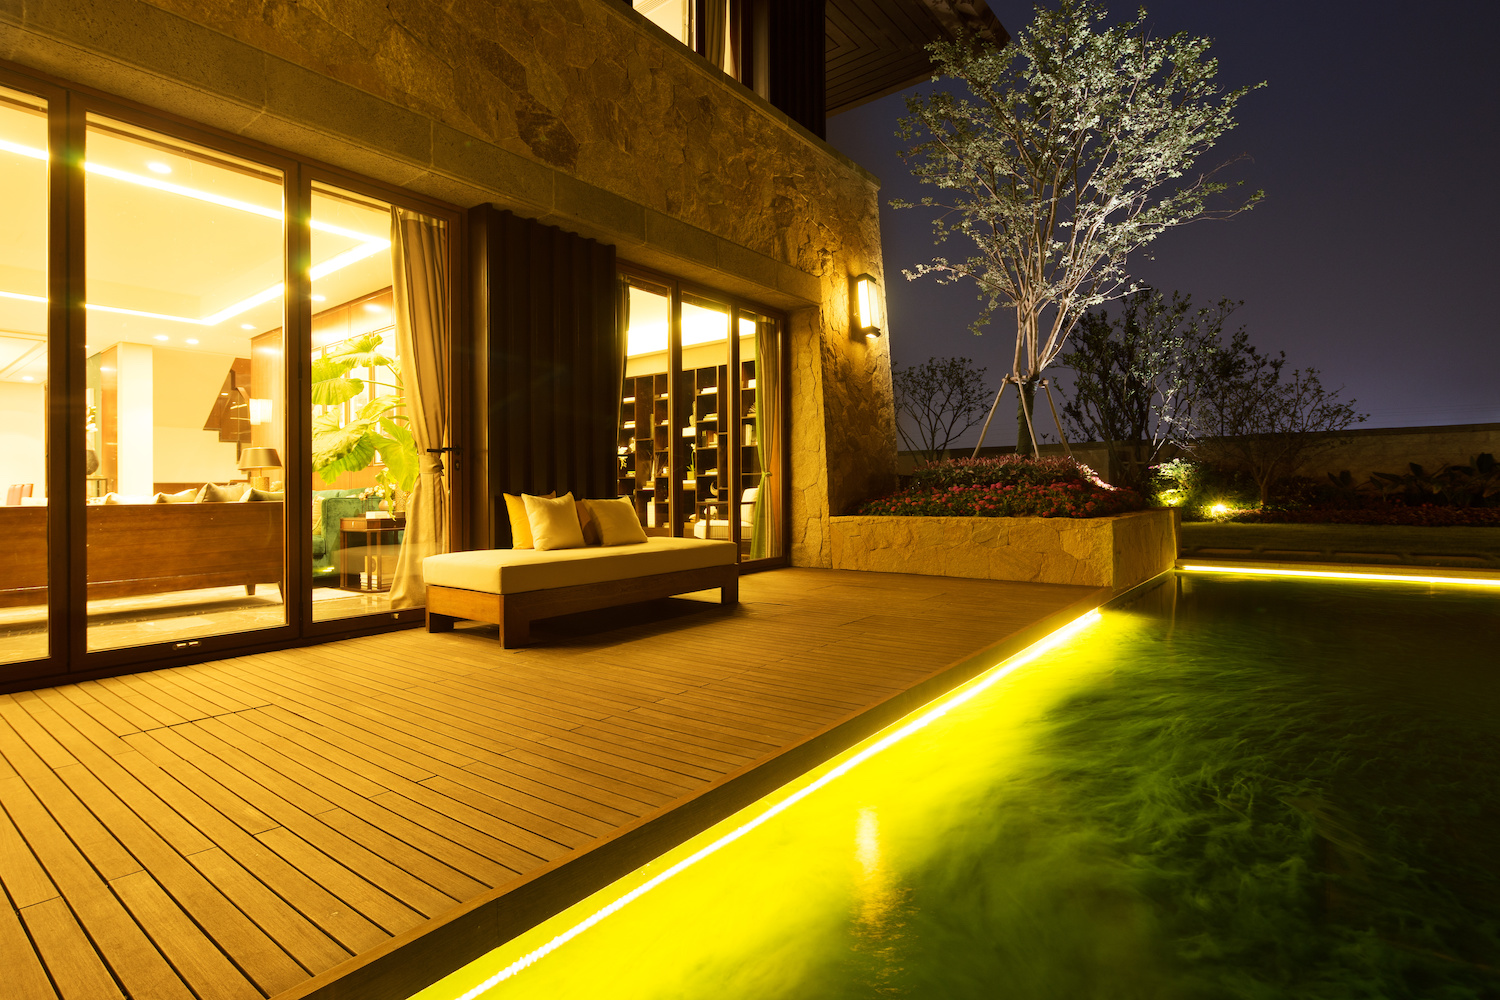 5 unique residential landscape lighting design ideas - Landscape Lighting Design Ideas